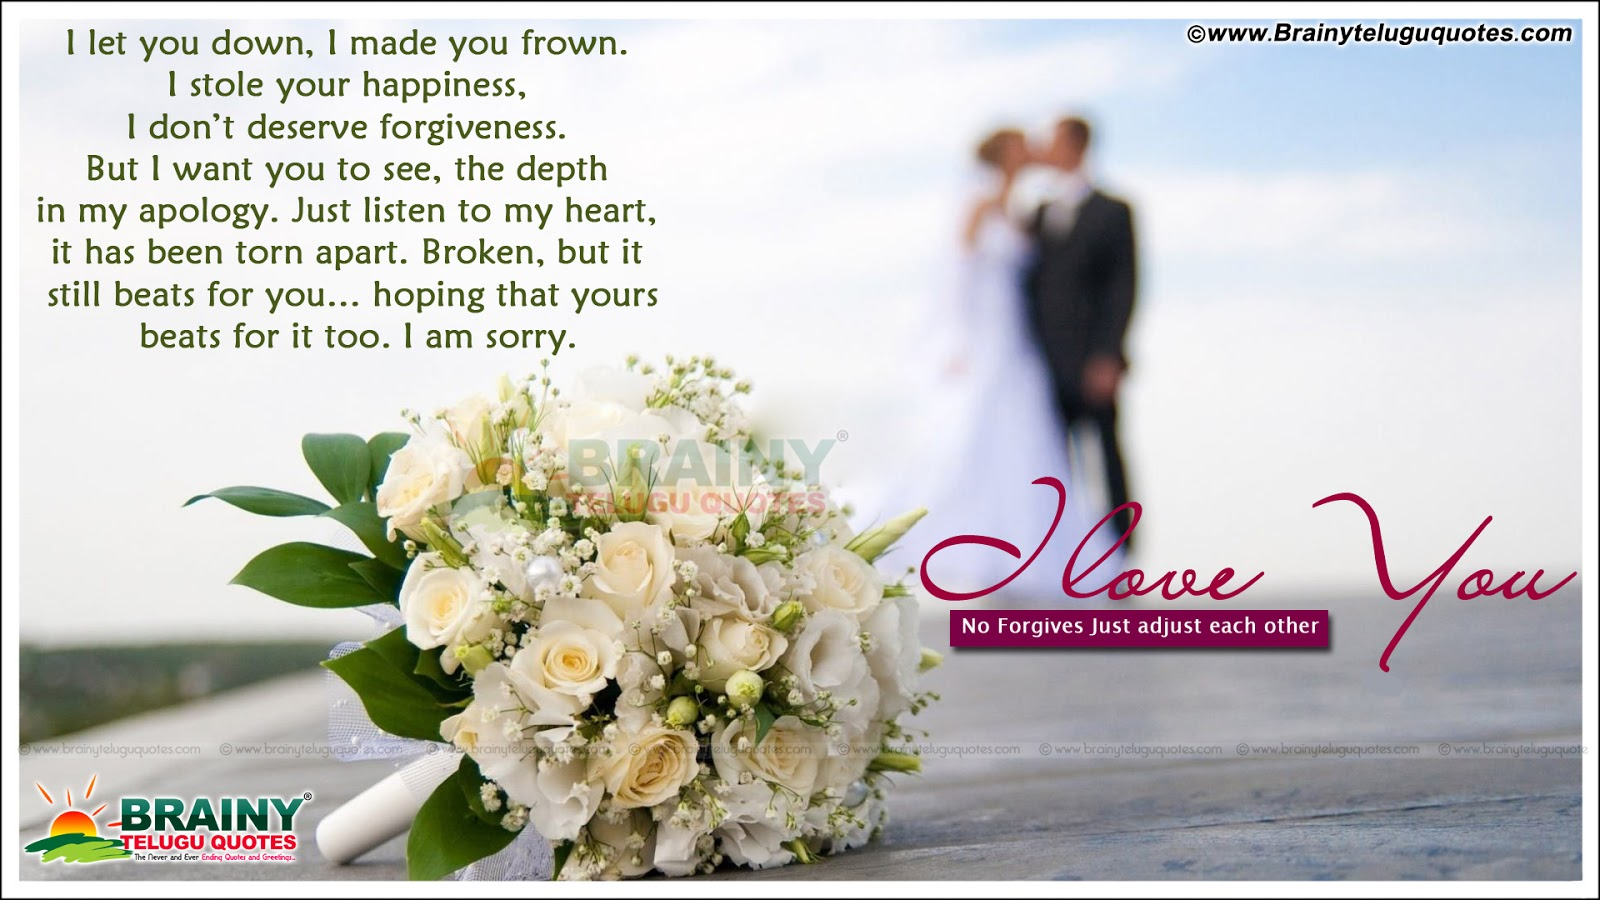 Beautiful Sweet Love Quotes and SMS for Girlfriends Nice Love Quotes for Girls Love SMS in English Language Nice English Quotes